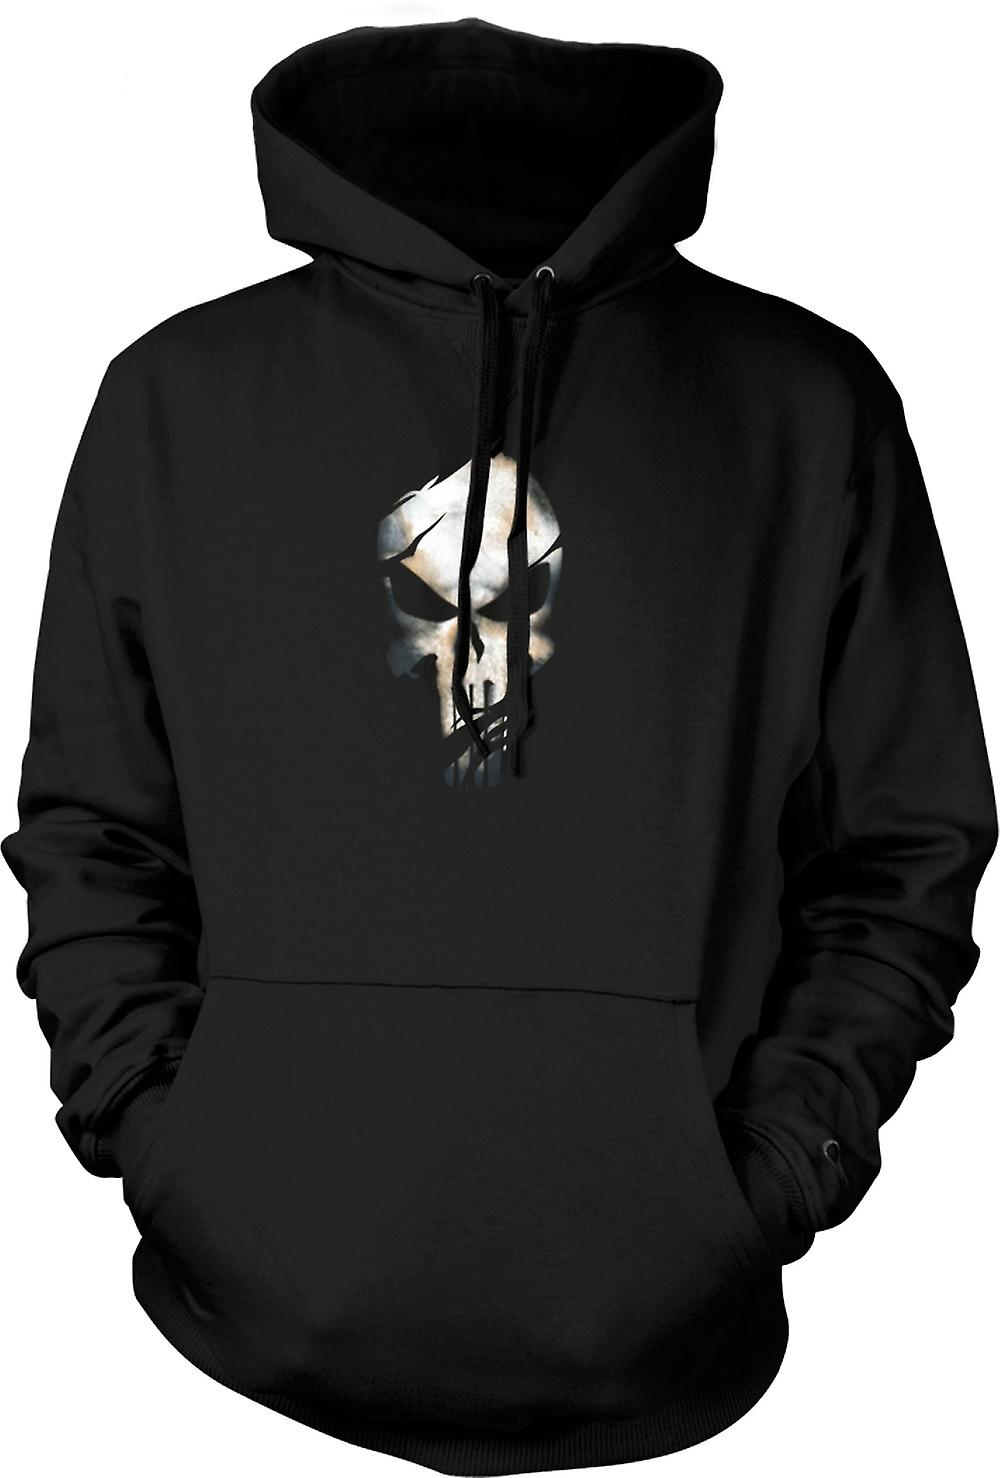 Mens Hoodie - The Punisher - Effet déchiré